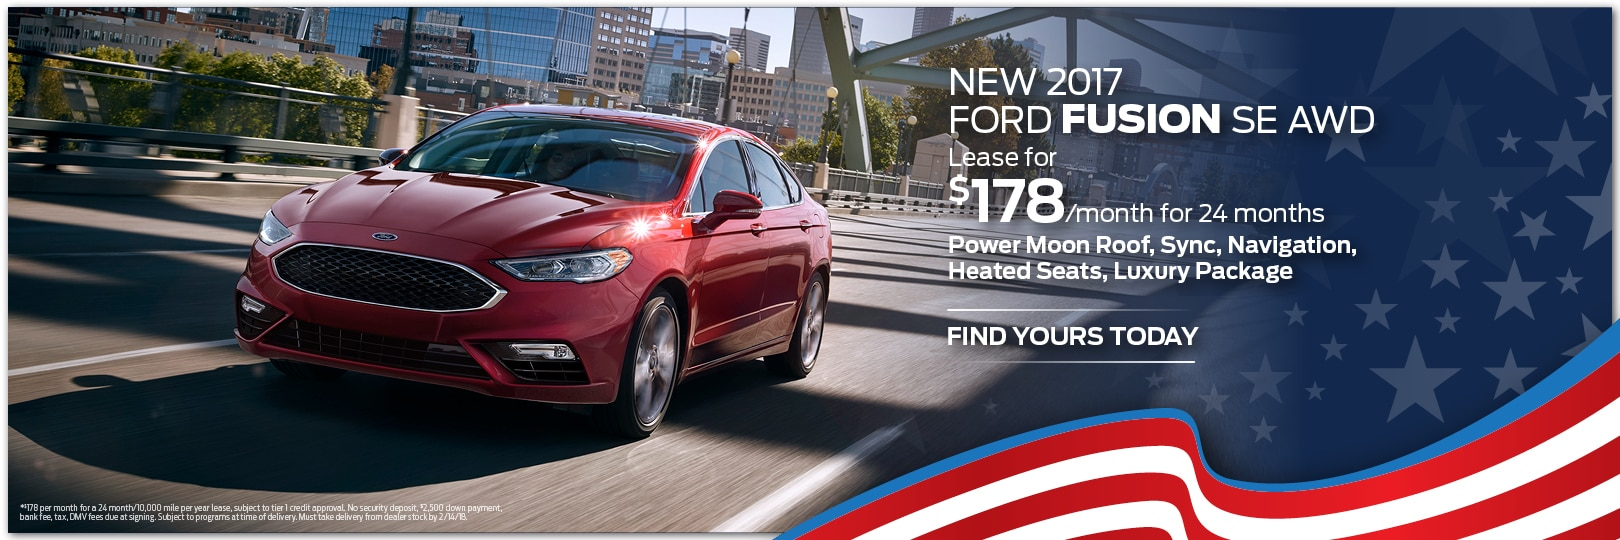 or fusion dealership lease southbayford buy angeles in los model ford modelimages